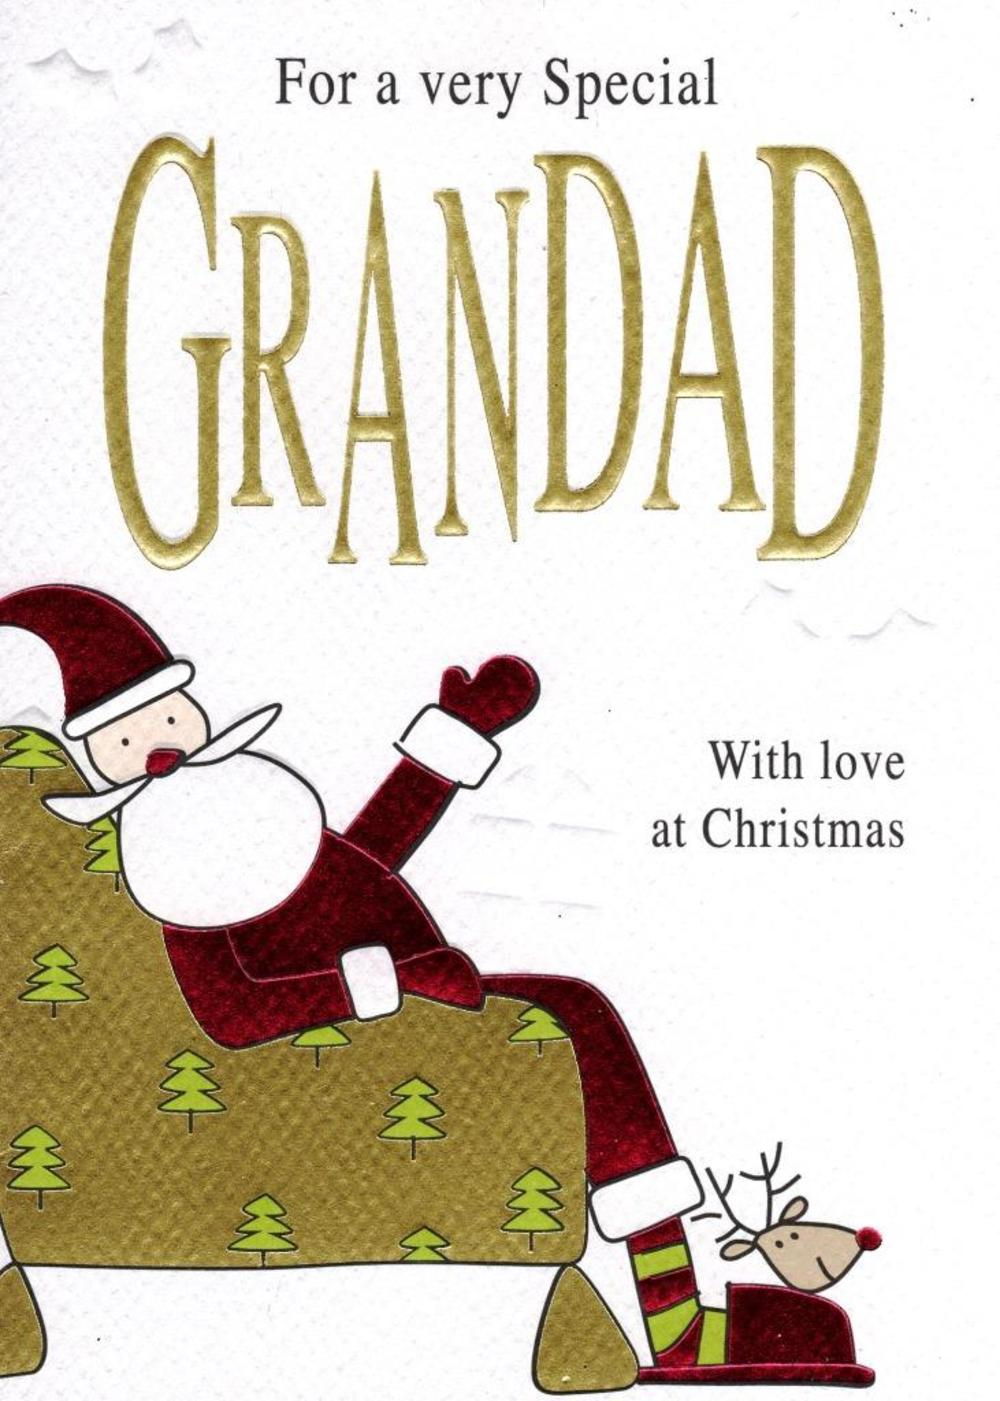 To A Special Grandad Christmas Card